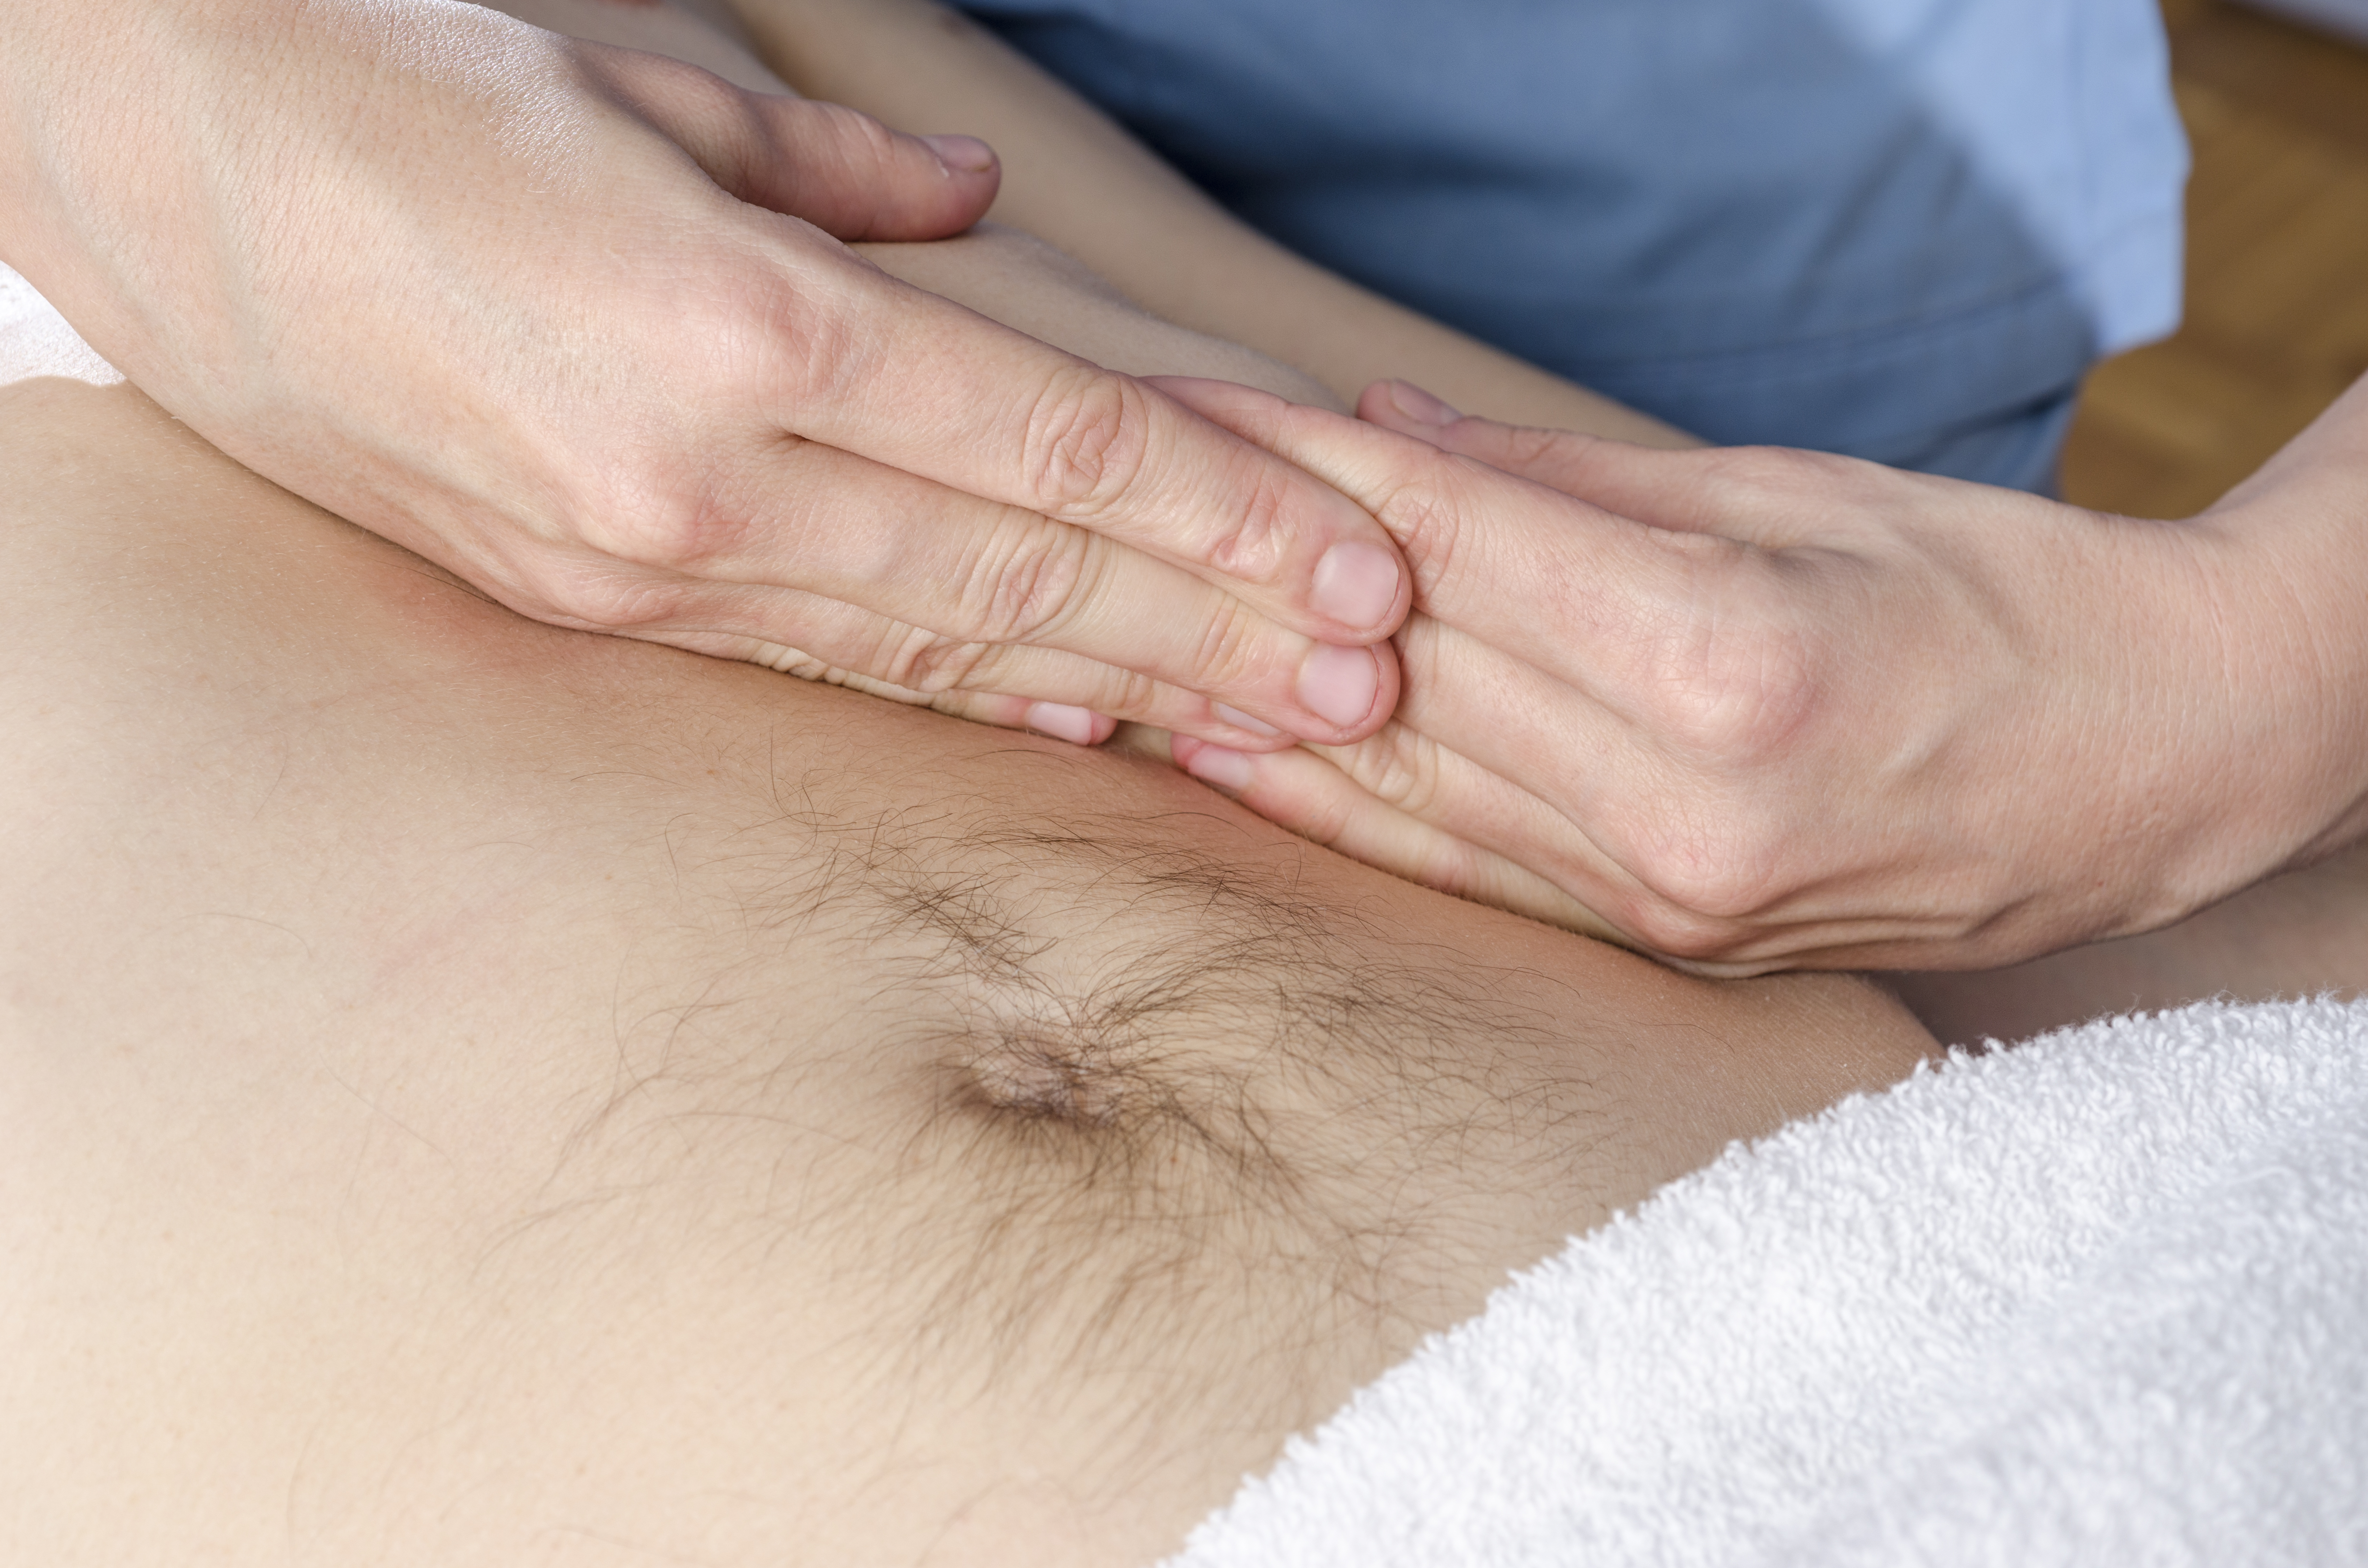 Physiotherapist is doing an activation of the diaphragm. Massage